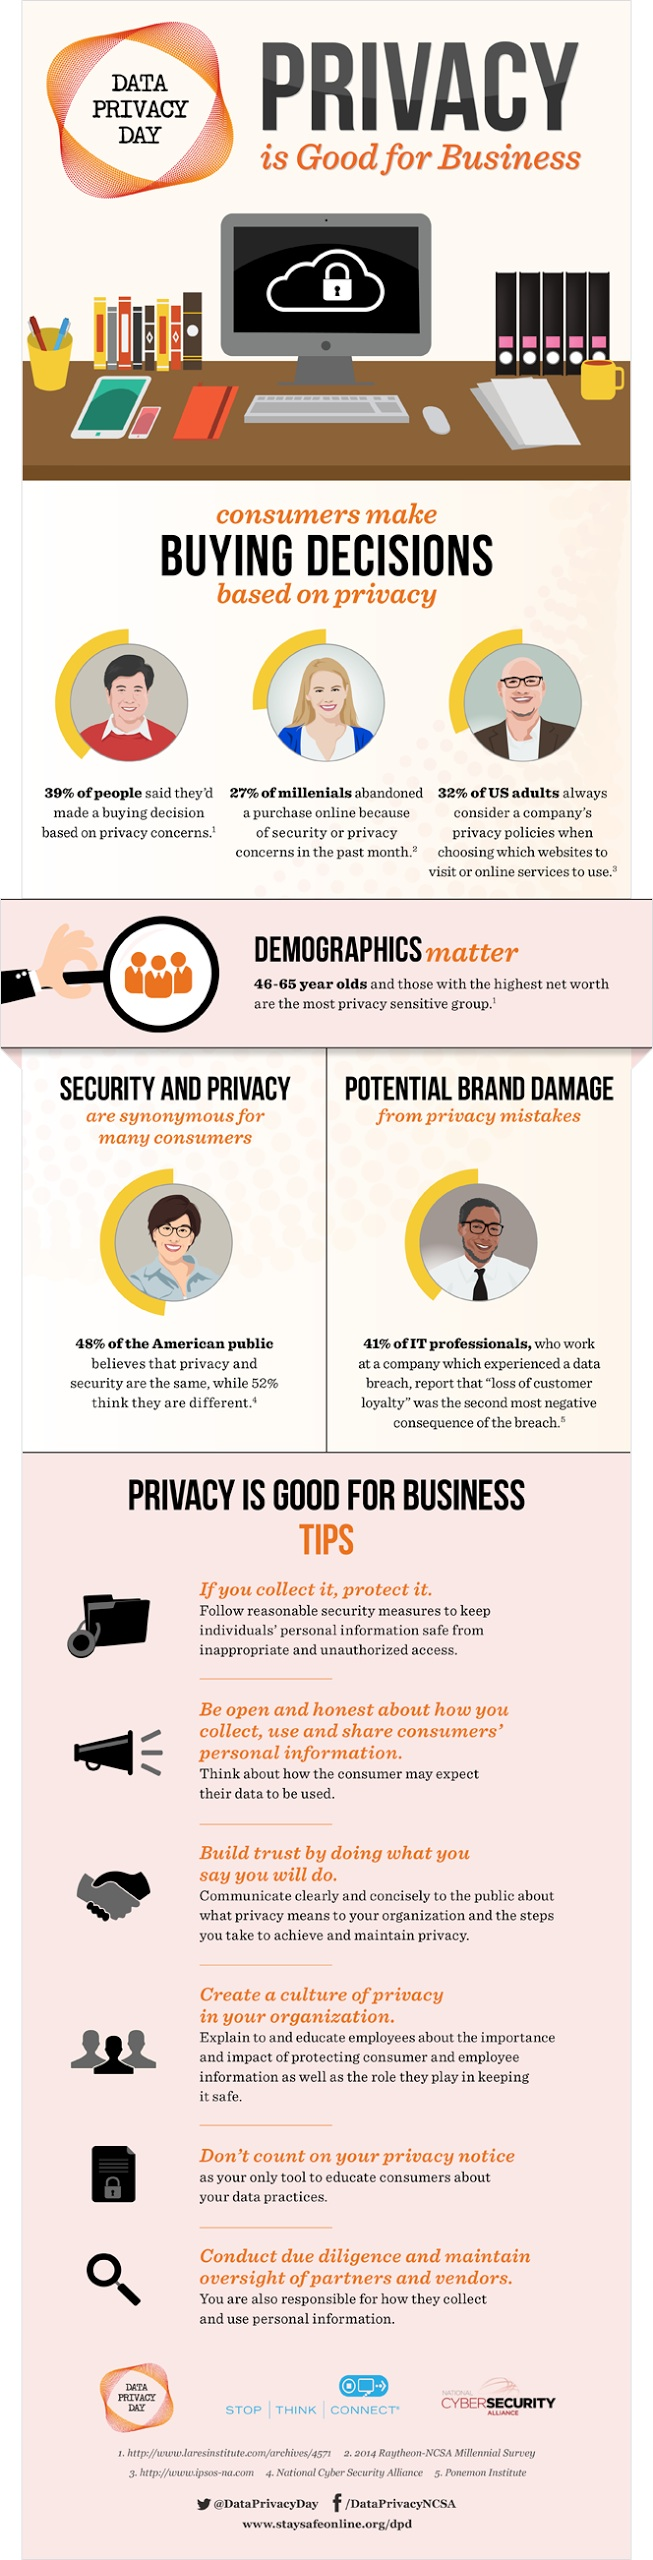 DPD-Privacy-is-Good-for-Business-2014_1_13.jpg